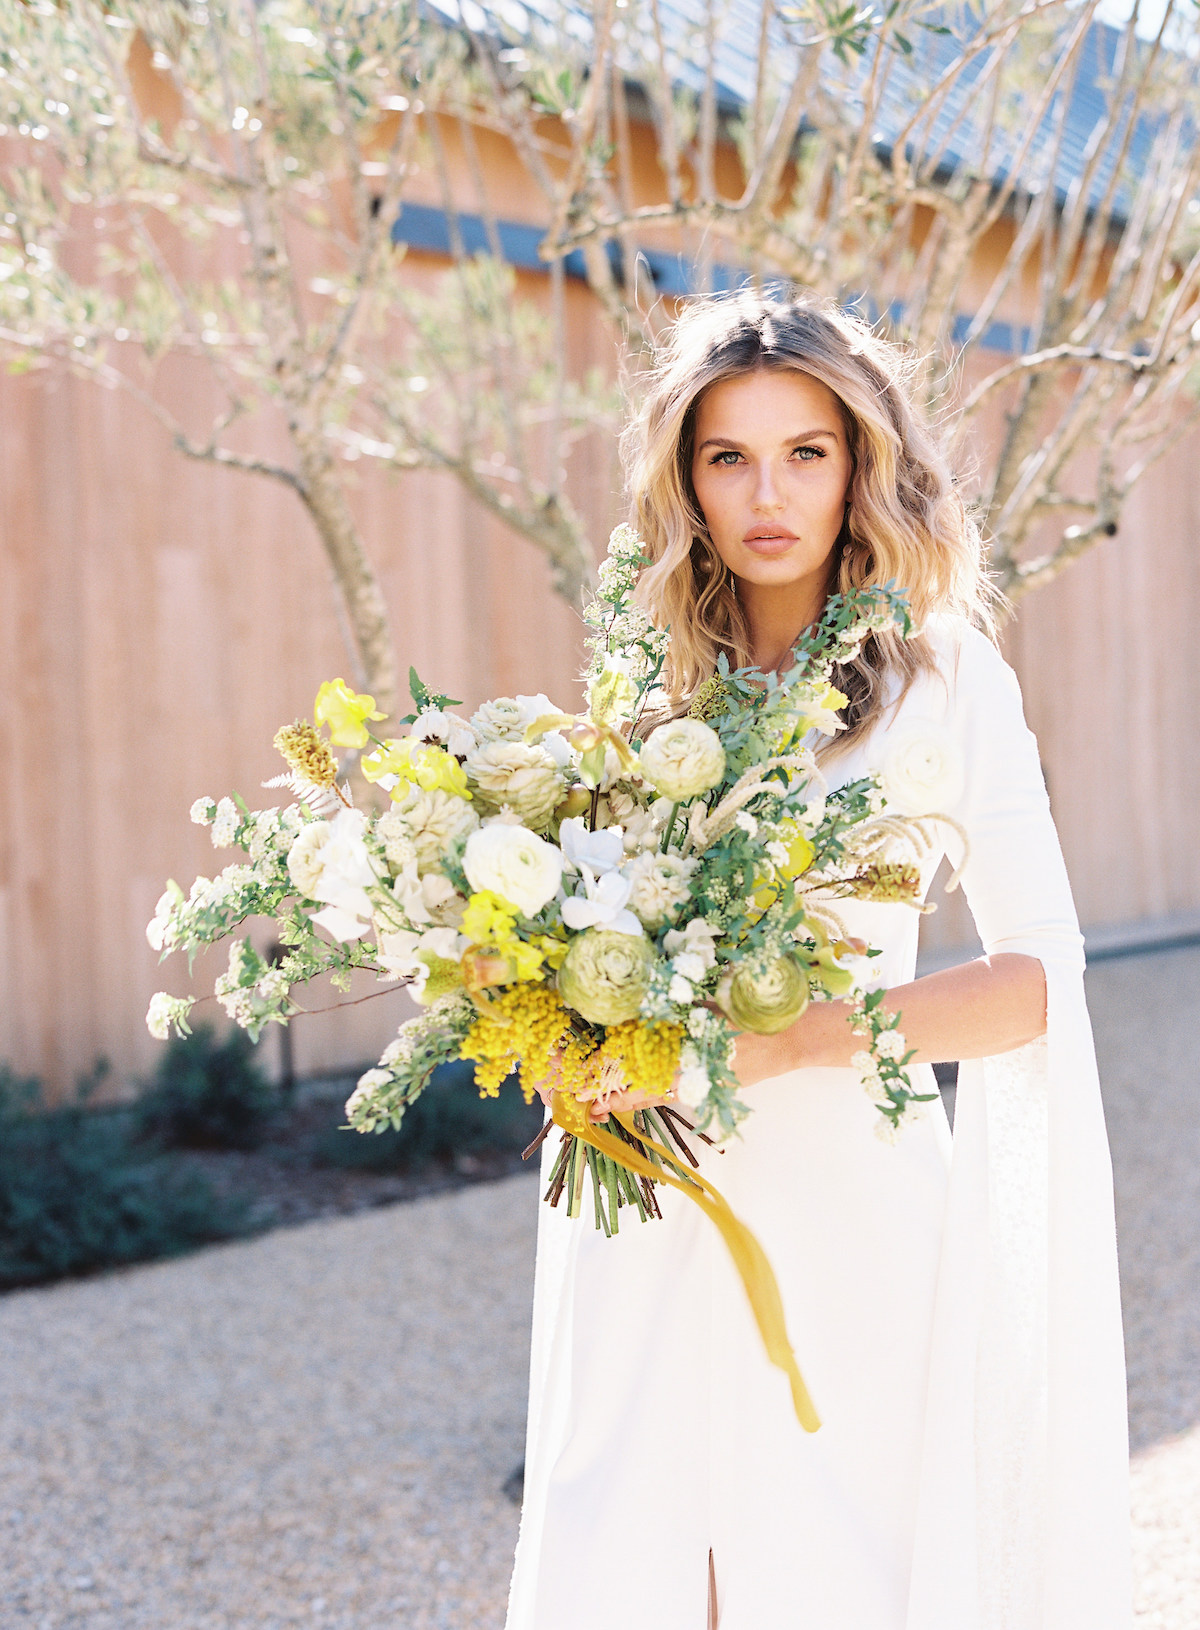 Yellow and white bridal bouquet for spring wedding